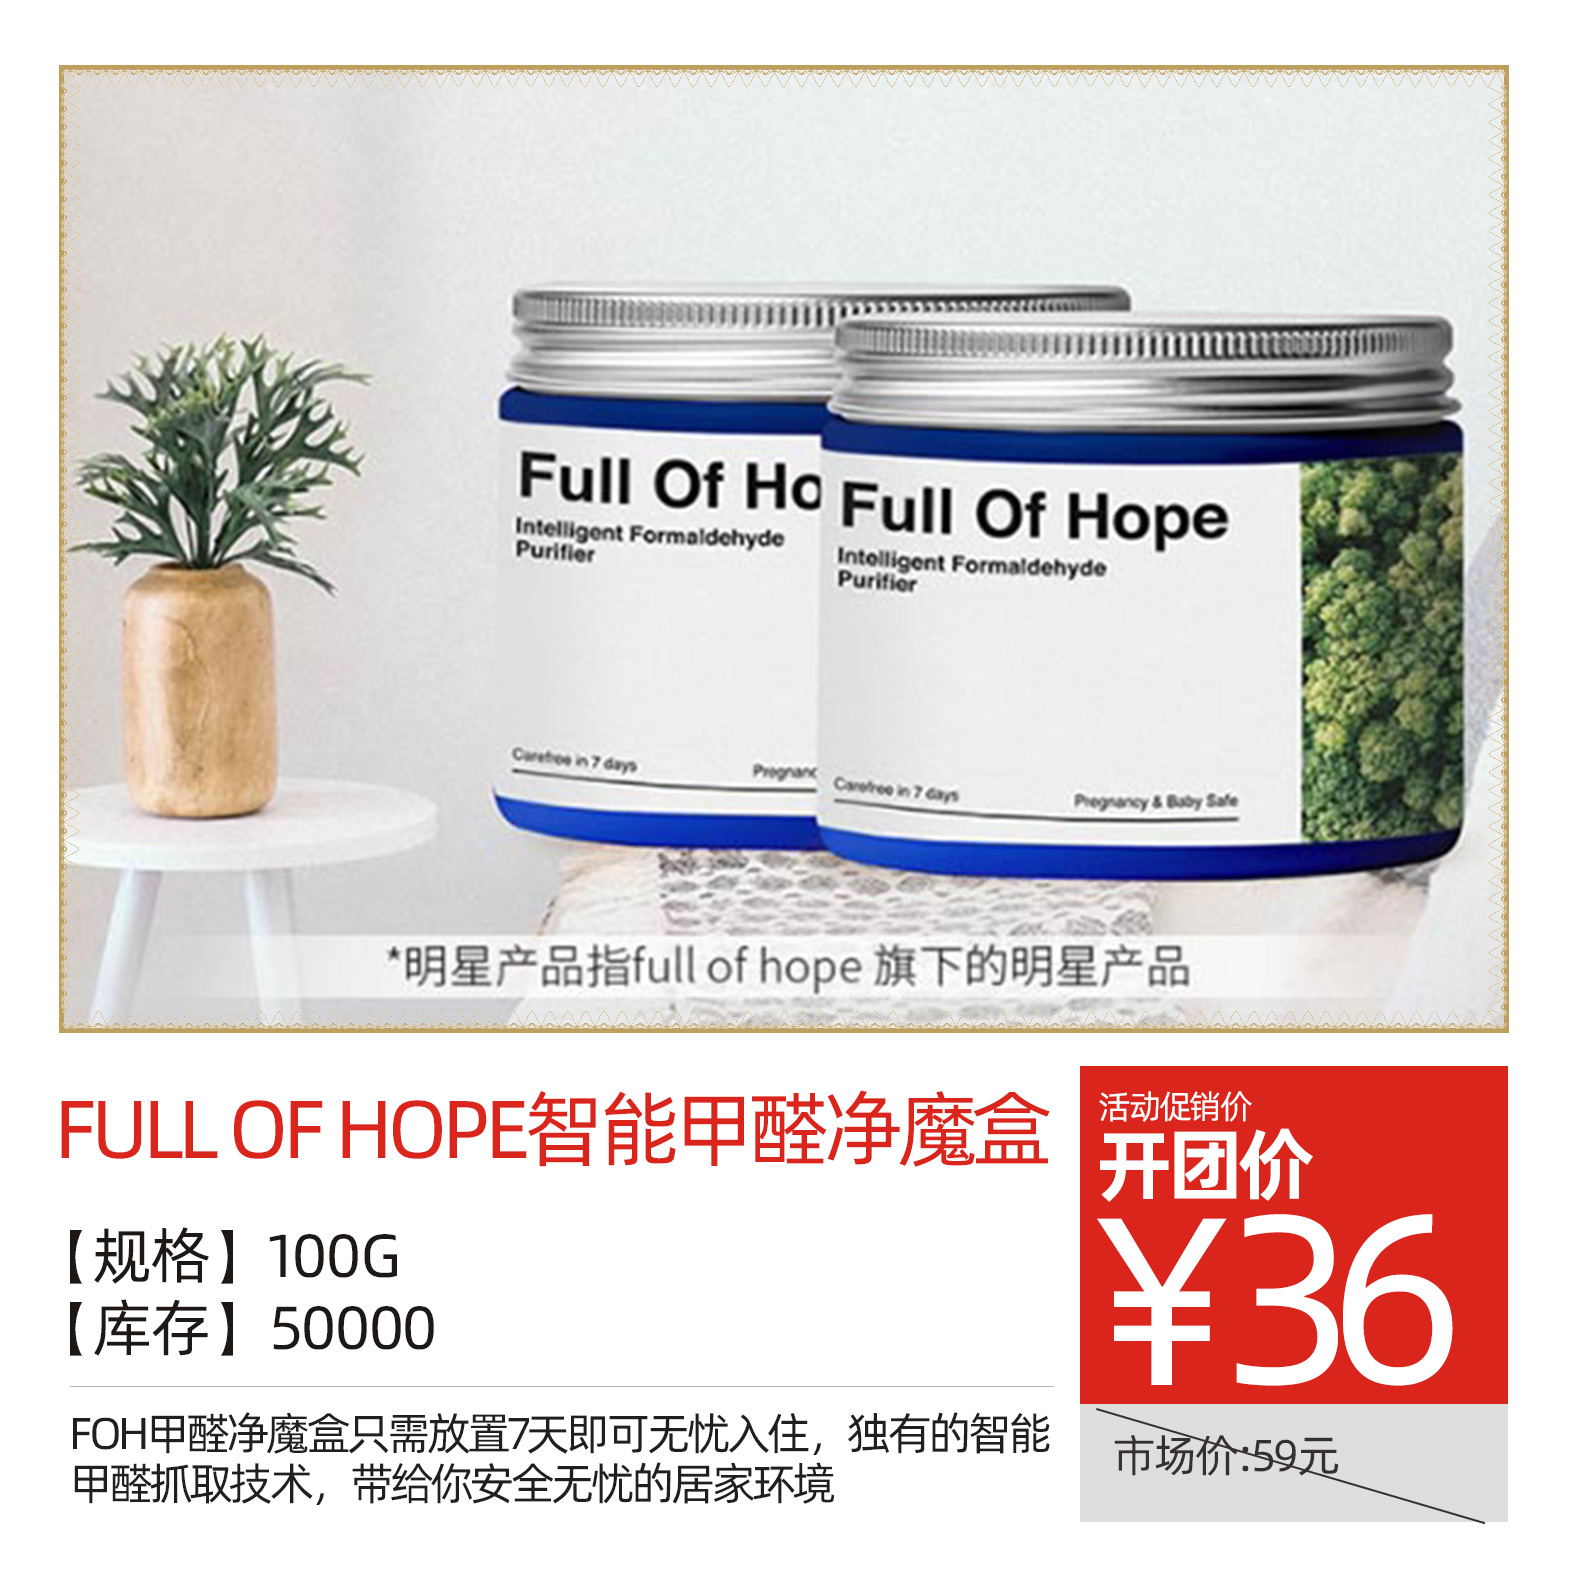 FULL OF HOPE智能甲醛净魔盒